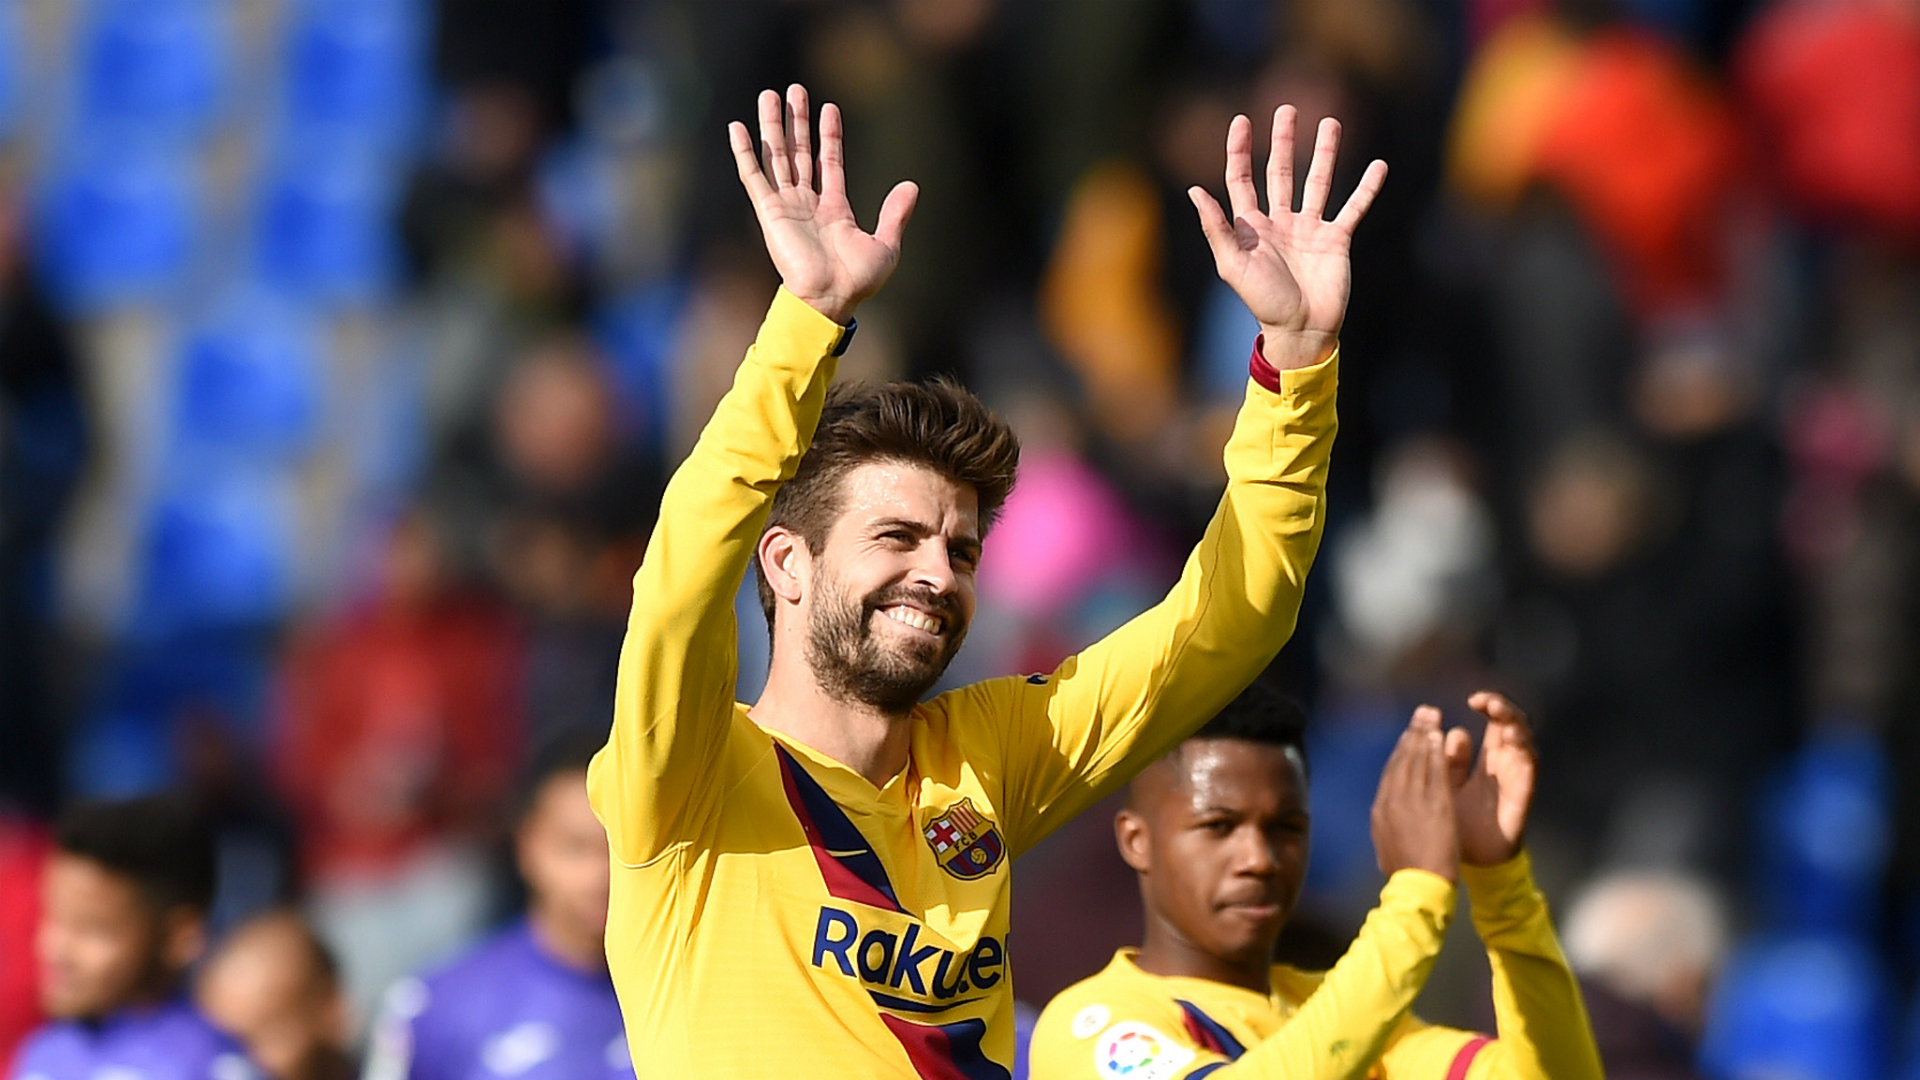 Barcelona defender Pique defends Davis Cup commitments